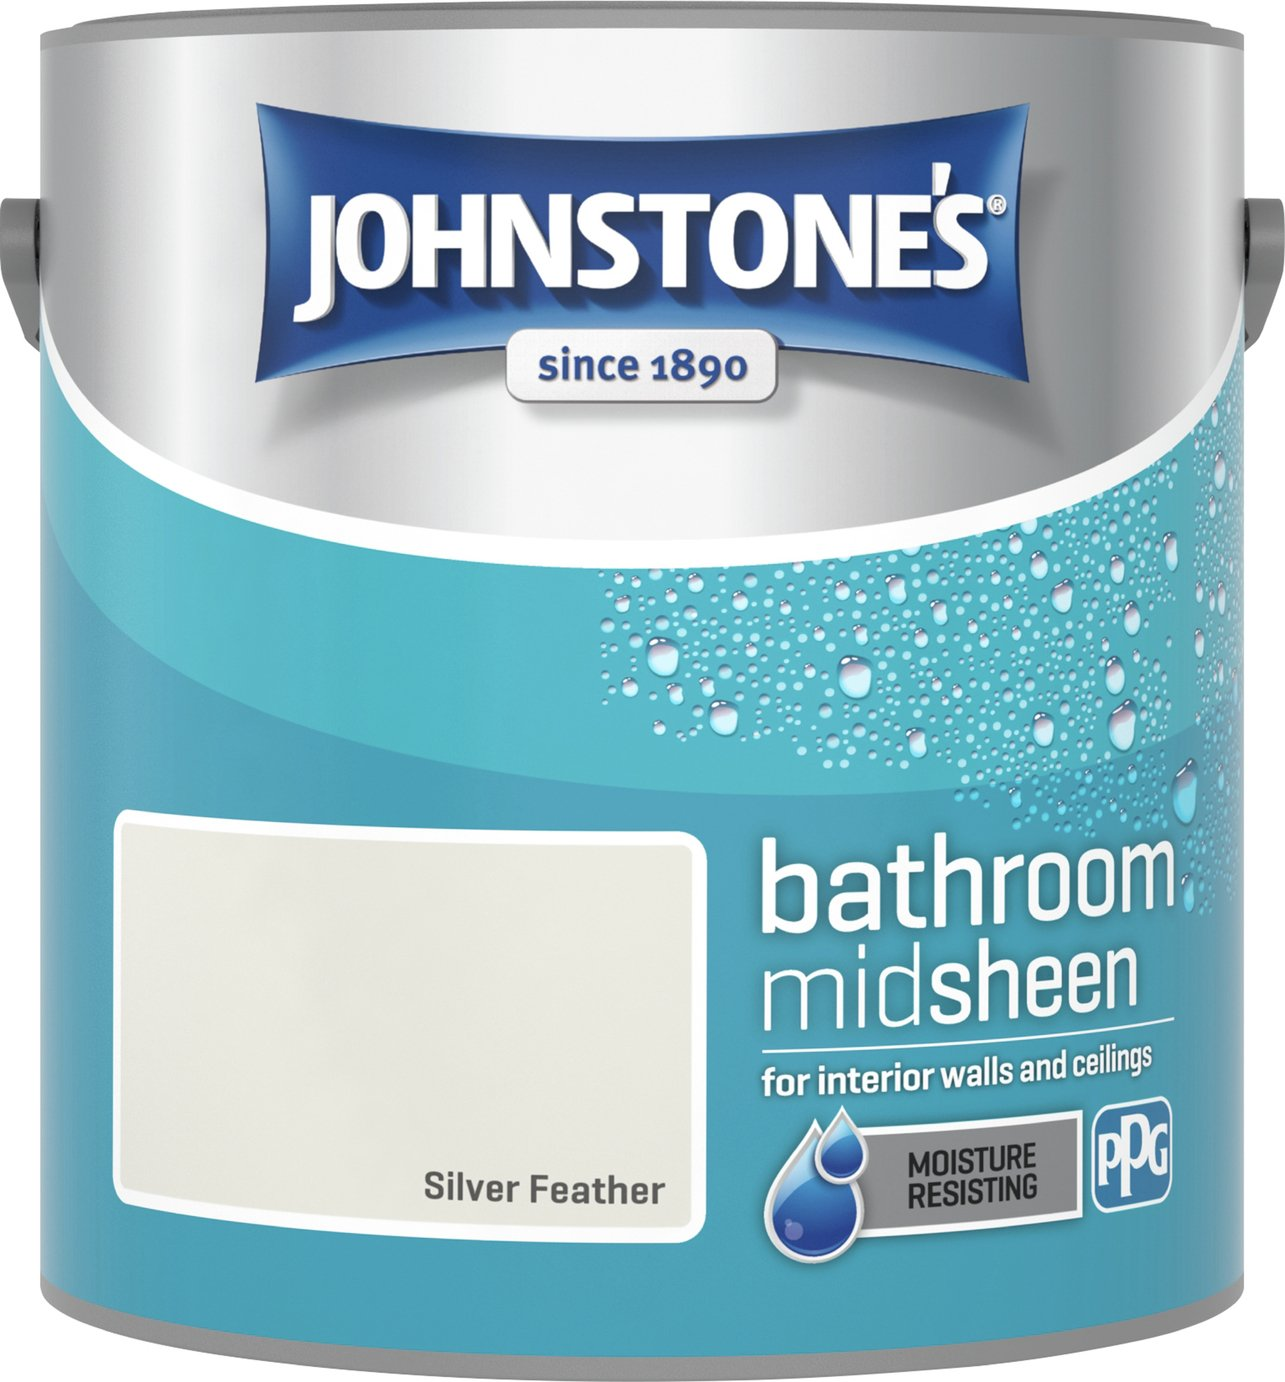 Johnstones Silver Feather Bathroom Emulsion Paint 2.5L